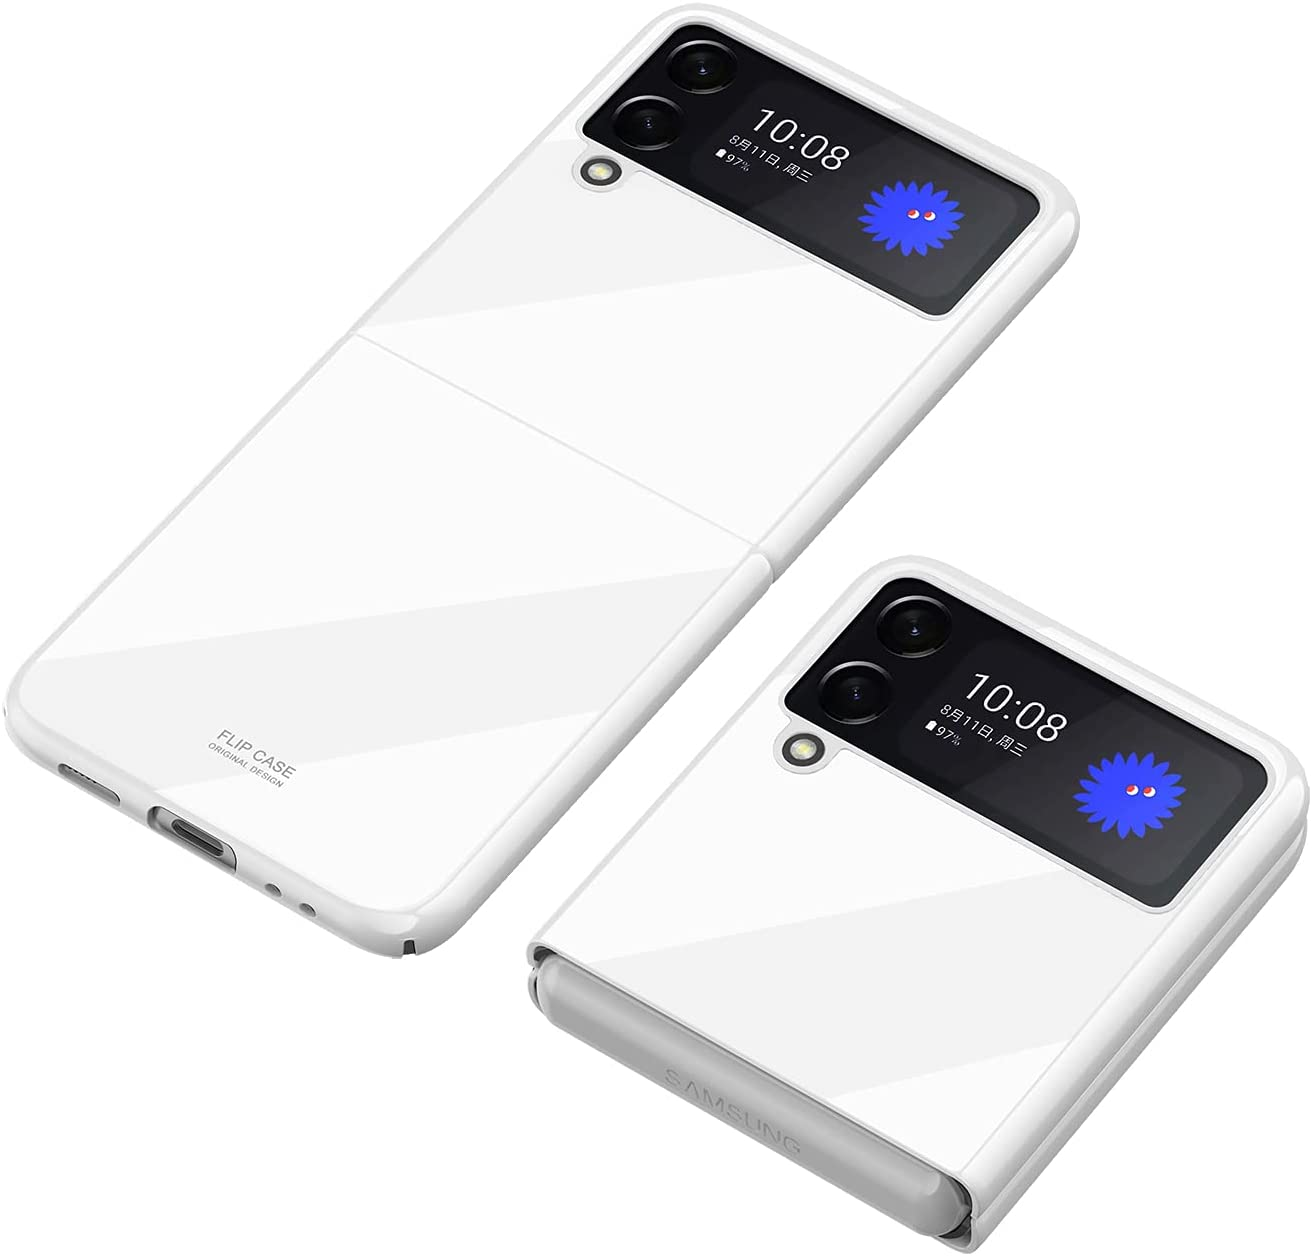 SHBDZGS for Samsung Galaxy Z Flip 3 Case Luxury Plastic Plating Crystal Shockproof Protection Finish Bumper Cover Case for Samsung Galaxy Z Flip 3 5G (White)